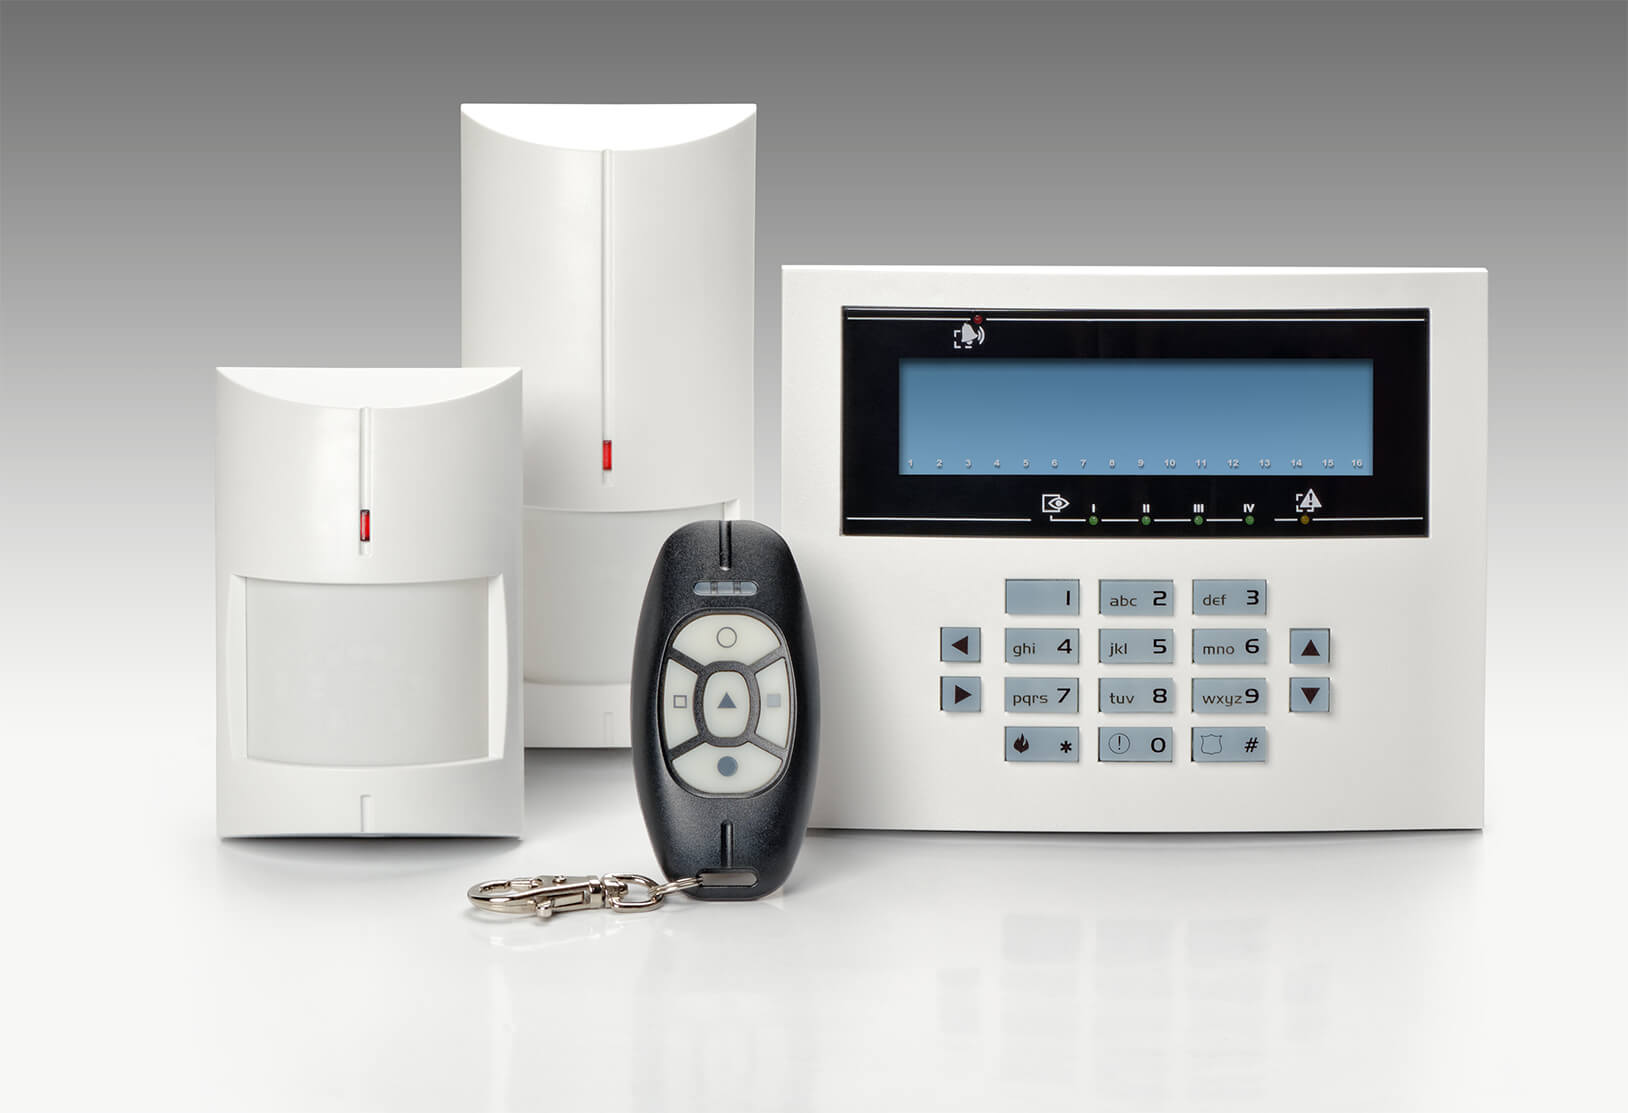 Business & Residential NACOSS Approved Burglar Alarms In Shoreditch E2 - Local Shoreditch E2 security company.Call 02078872244 - Dedicated to Safety & Security. Companies, shops and homes ..